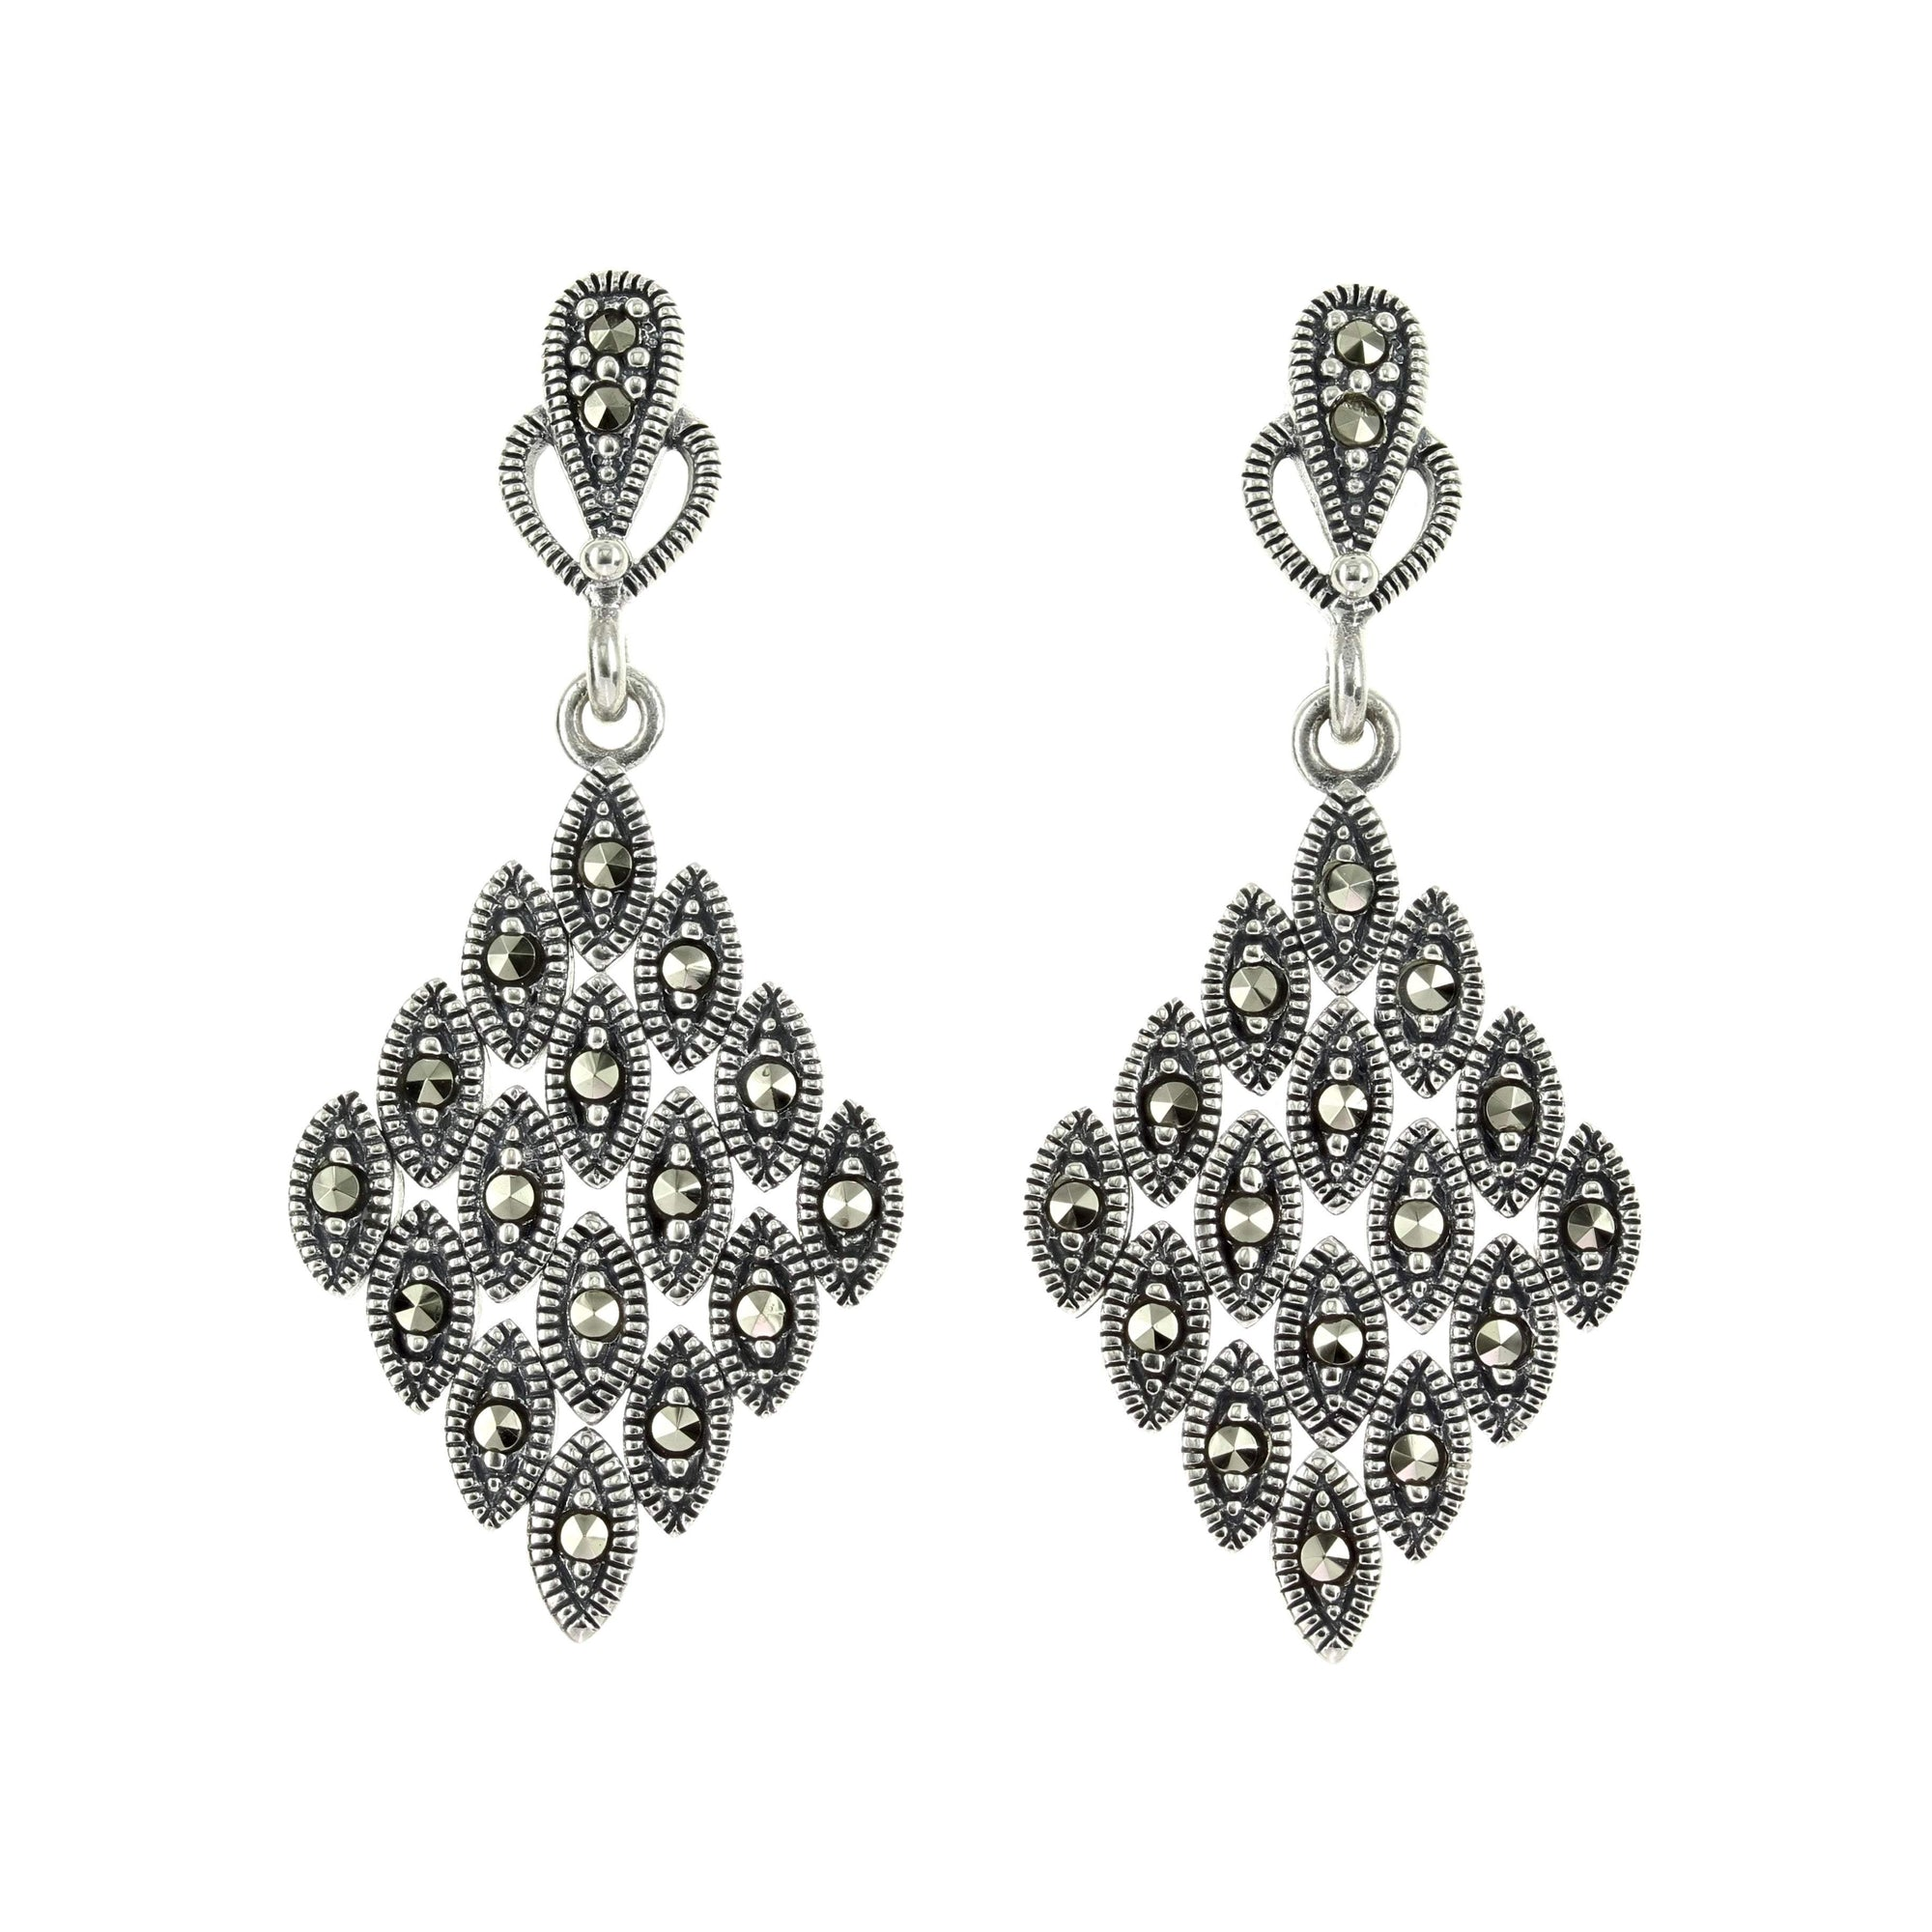 Marcasite Collection Earrings Default Title / Silver / Black Marcasite Diamond Earrings